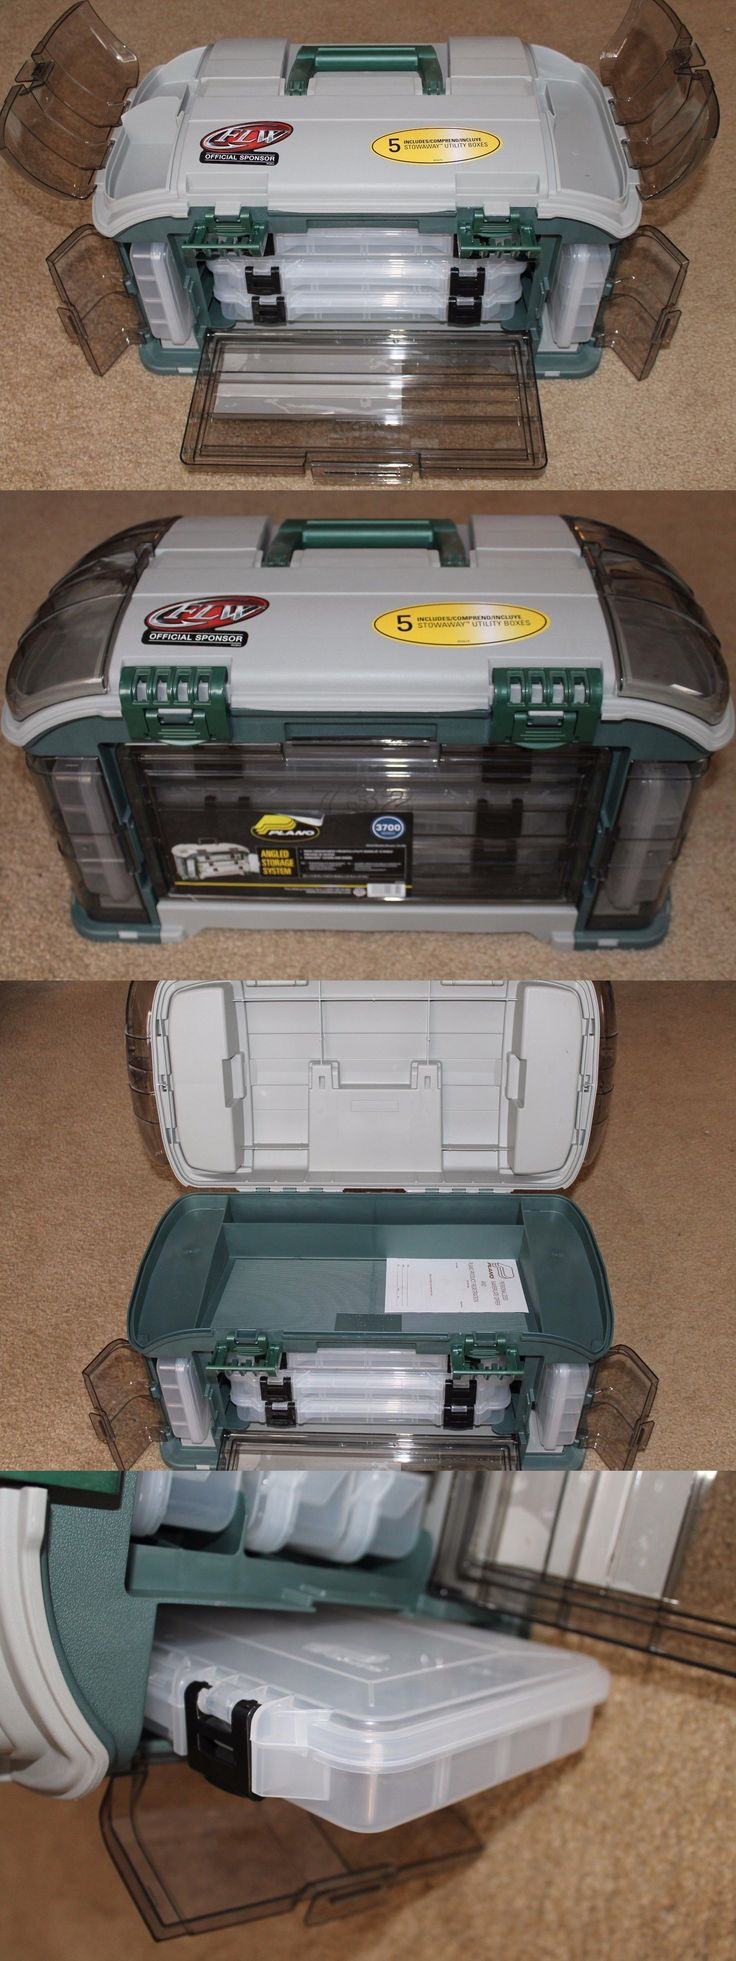 Tackle Boxes and Bags 22696: New Larger Version Plano 732 Angled Fishing Tackle Box, 5 Stowaway Boxes Storage -> BUY IT NOW ONLY: $53.99 on eBay!